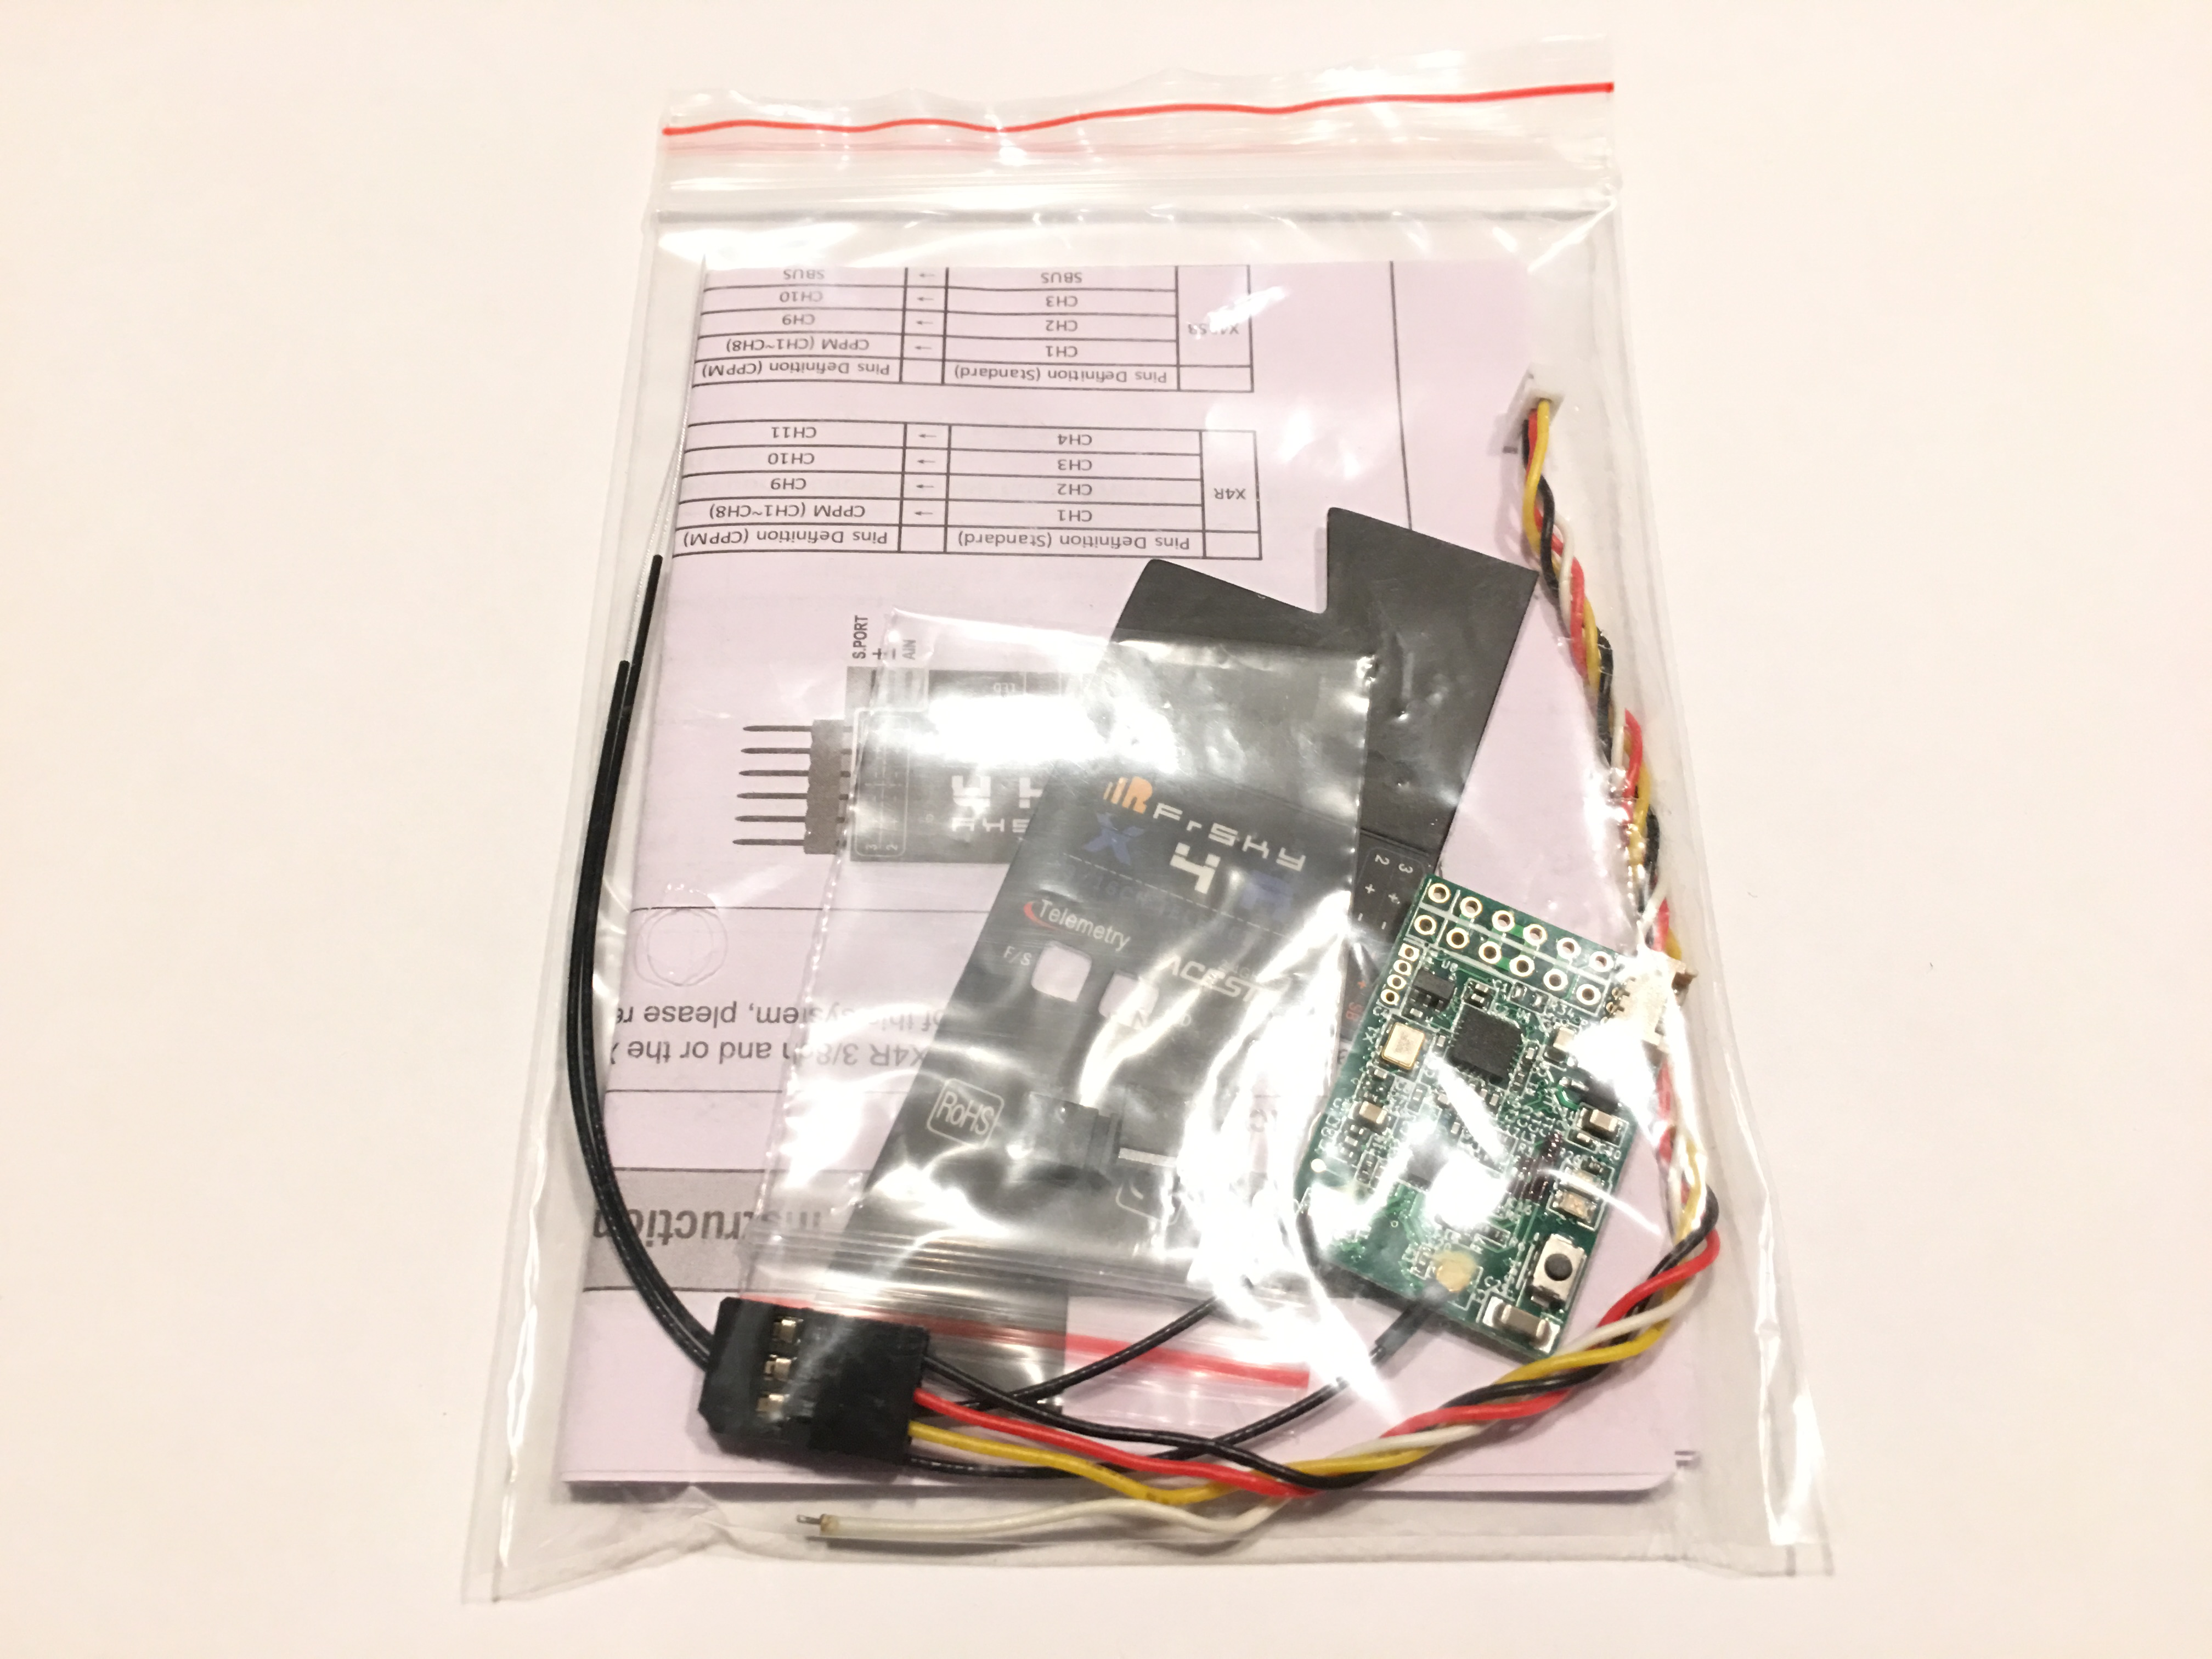 FrSky Naked X4RSB 2.4 GHz 16ch ACCST Receiver with S-BUS